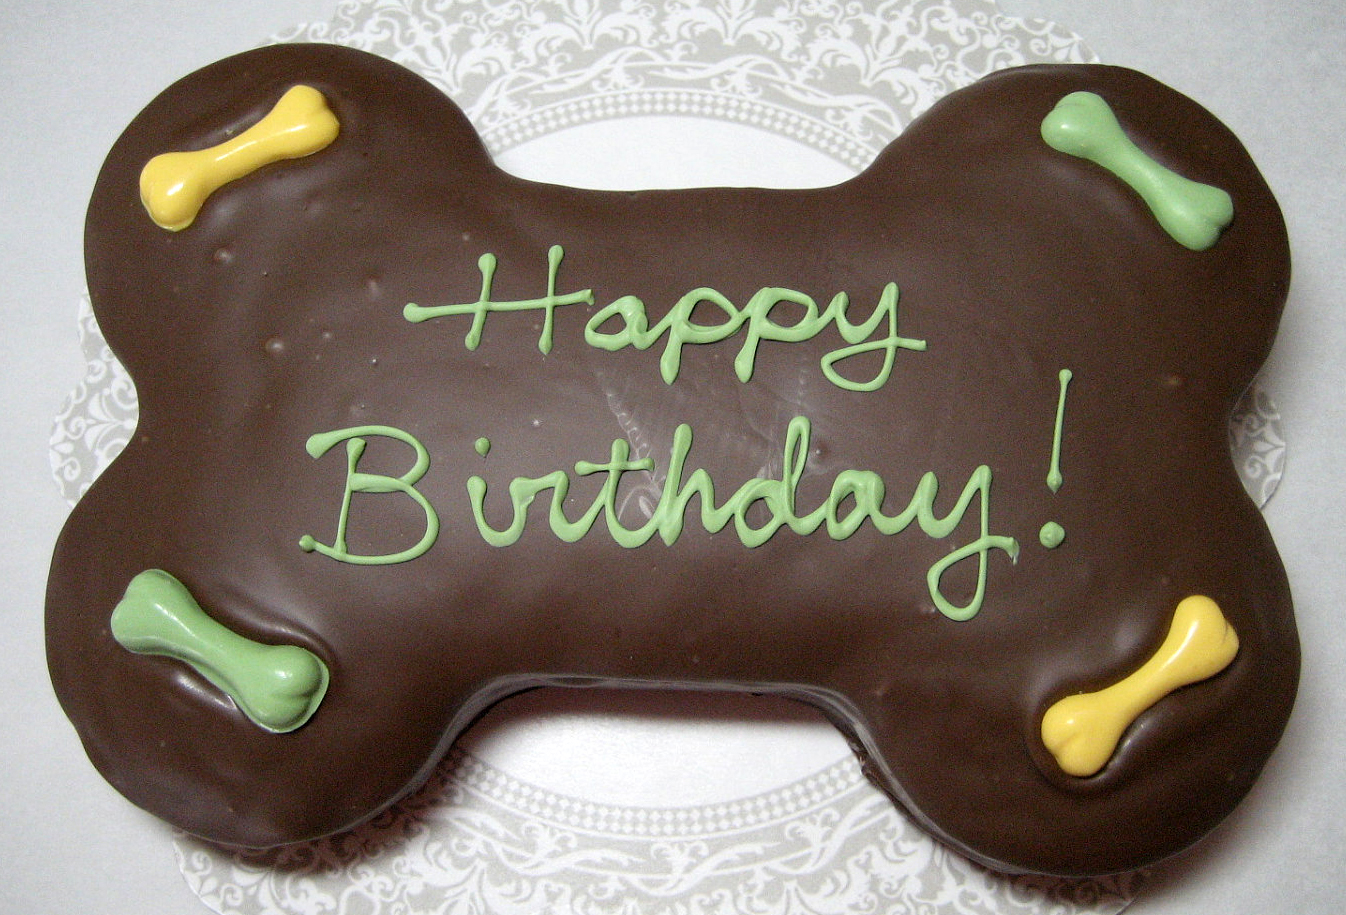 Puppy Happy Birthday Cake